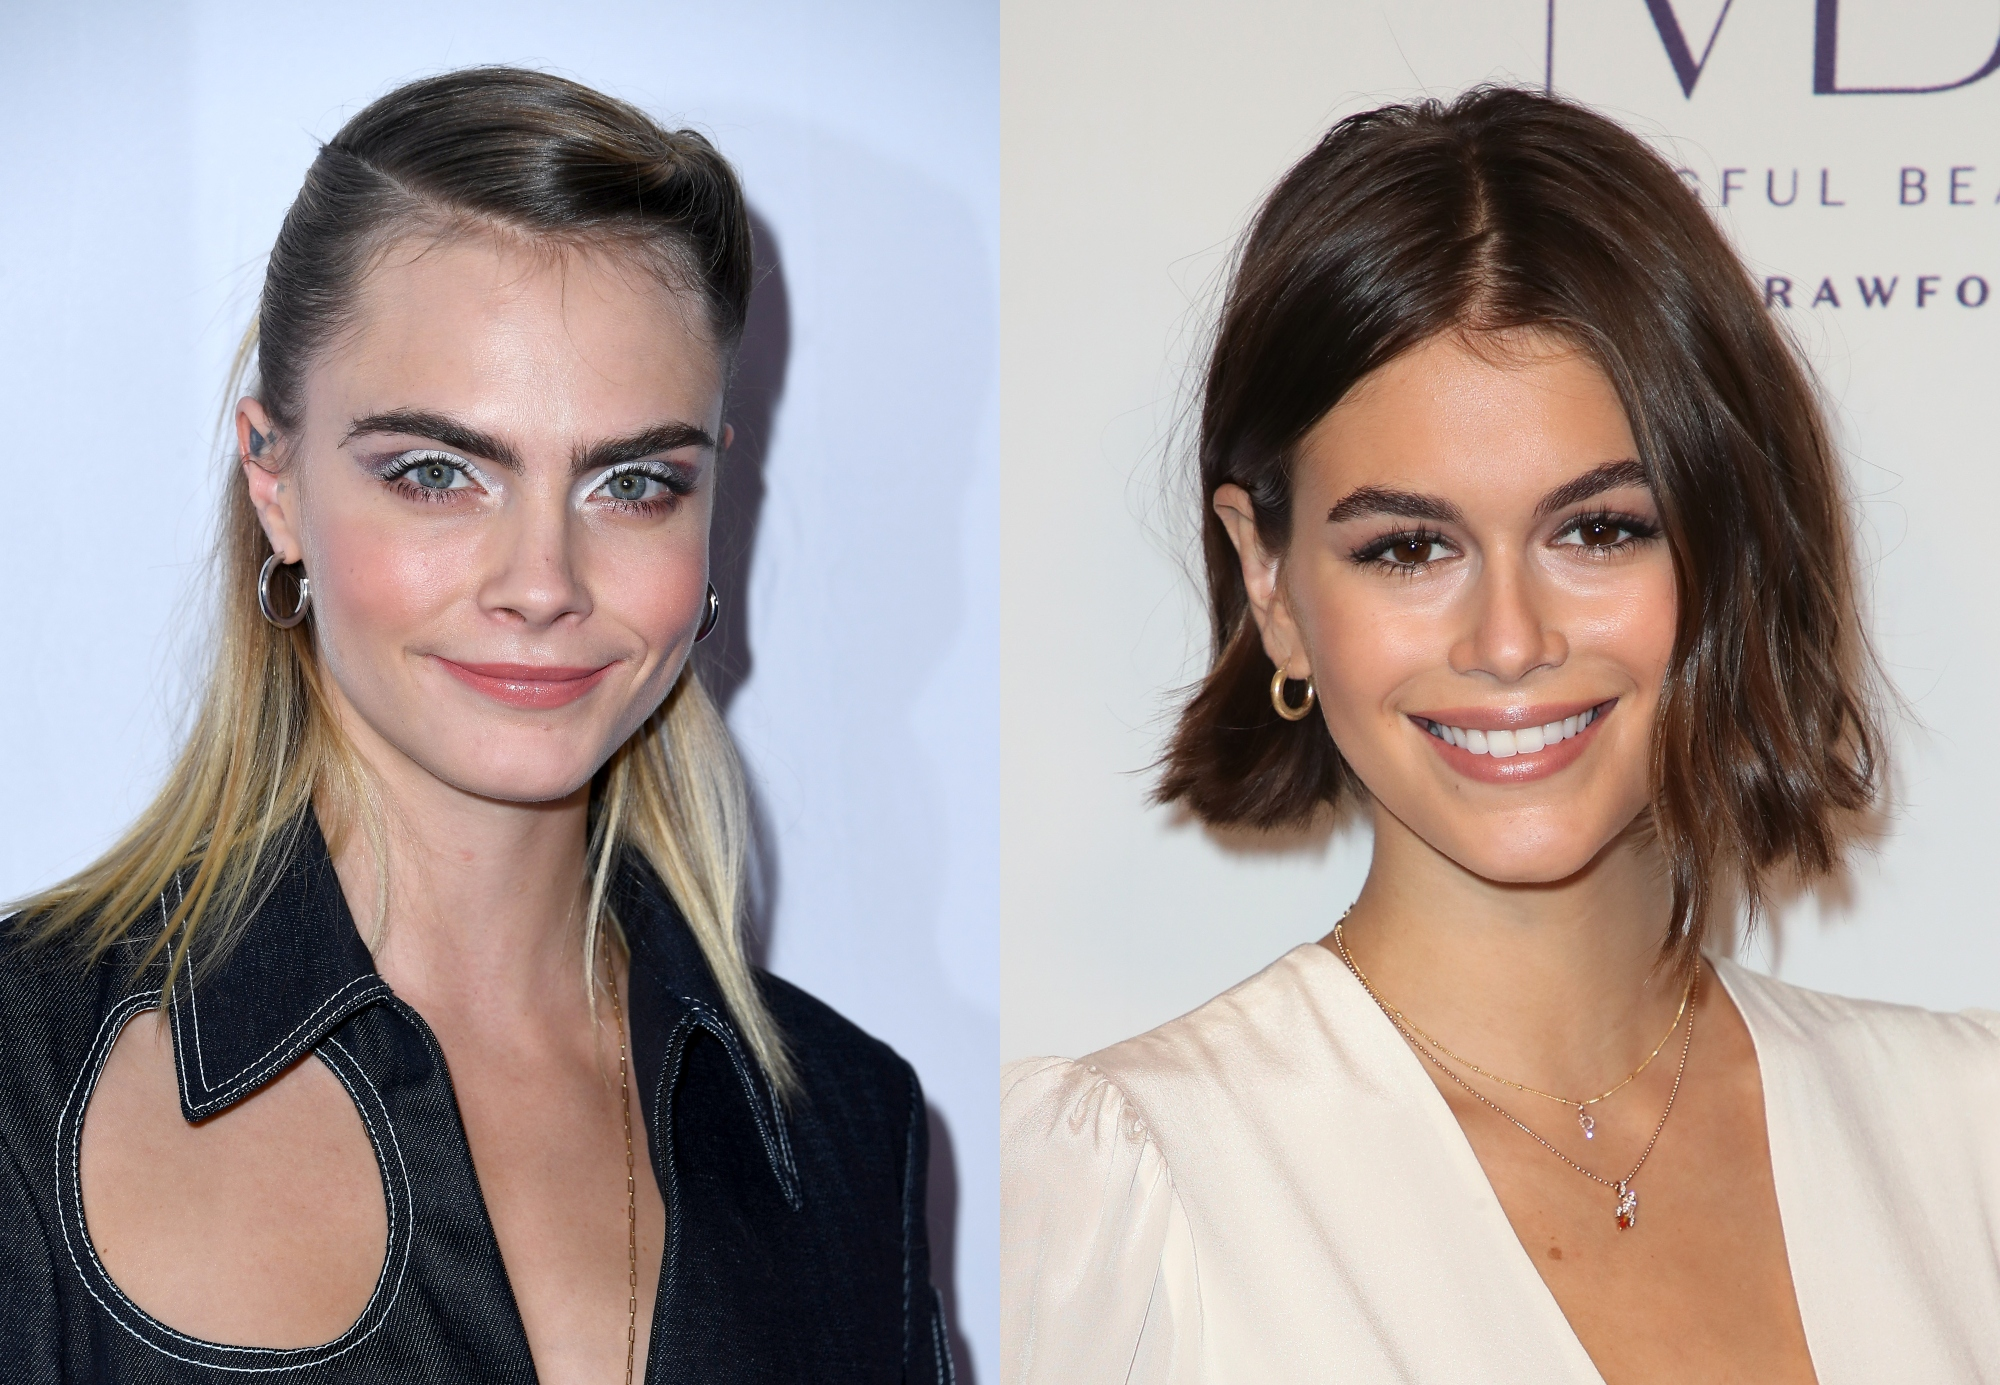 Cara Delevingne, Kaia Gerber Dating Rumors and Real Truth